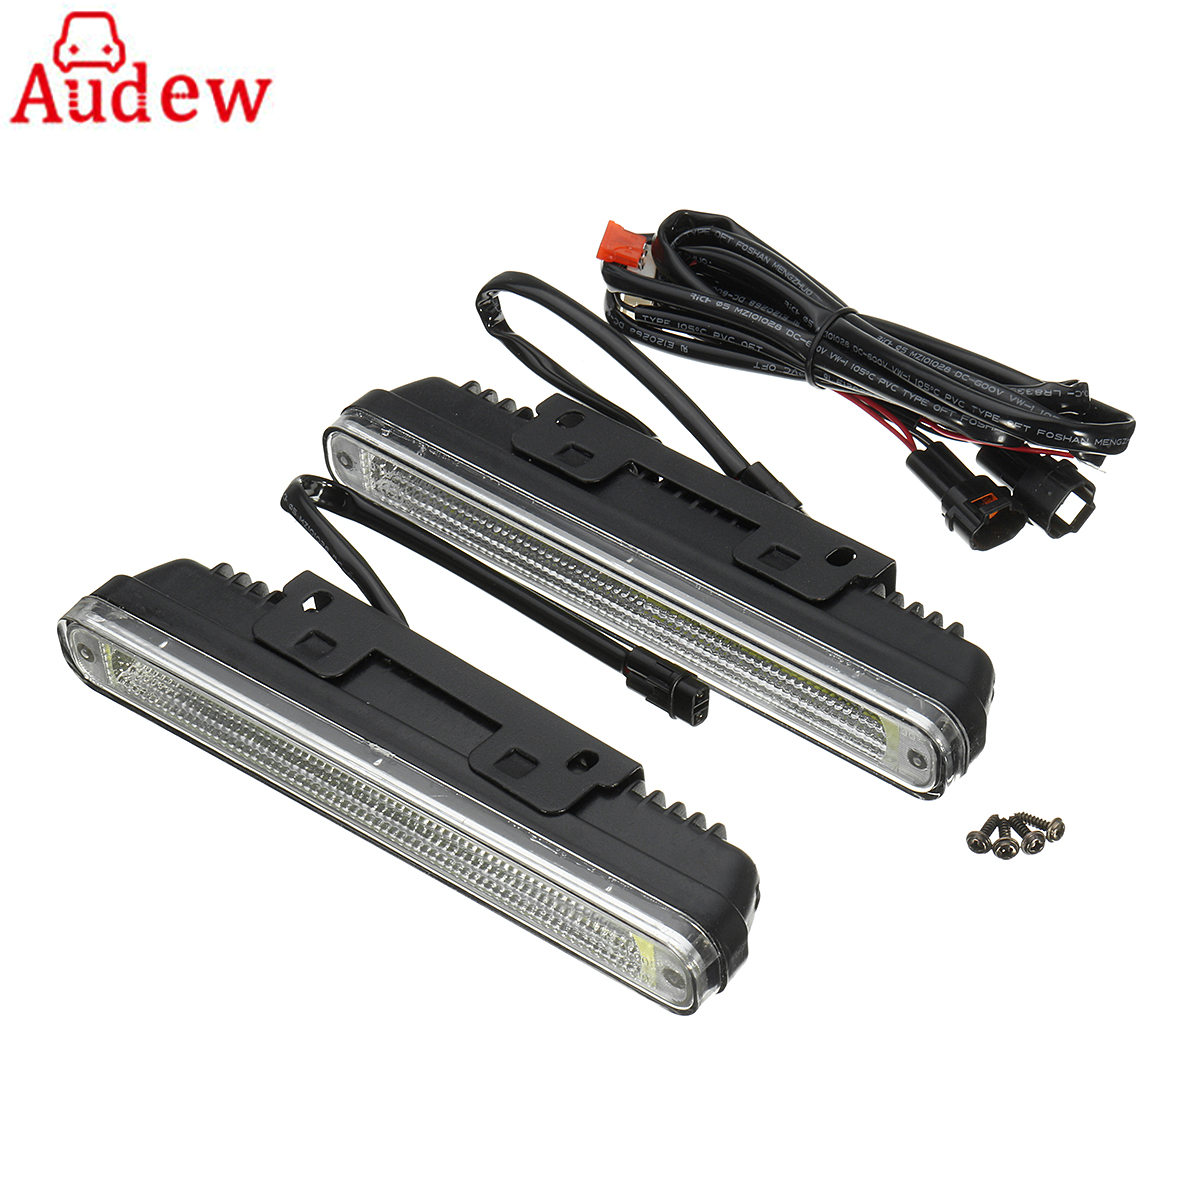 2Pcs Universal Car Daytime Running Light LED COB 12V DRL Auto Driving Front Fog Lamp White Bulb Waterproof 6000K auto led car bumper grille drl daytime running light driving fog lamp source bulb for vw volkswagen golf mk4 1997 2006 2pcs